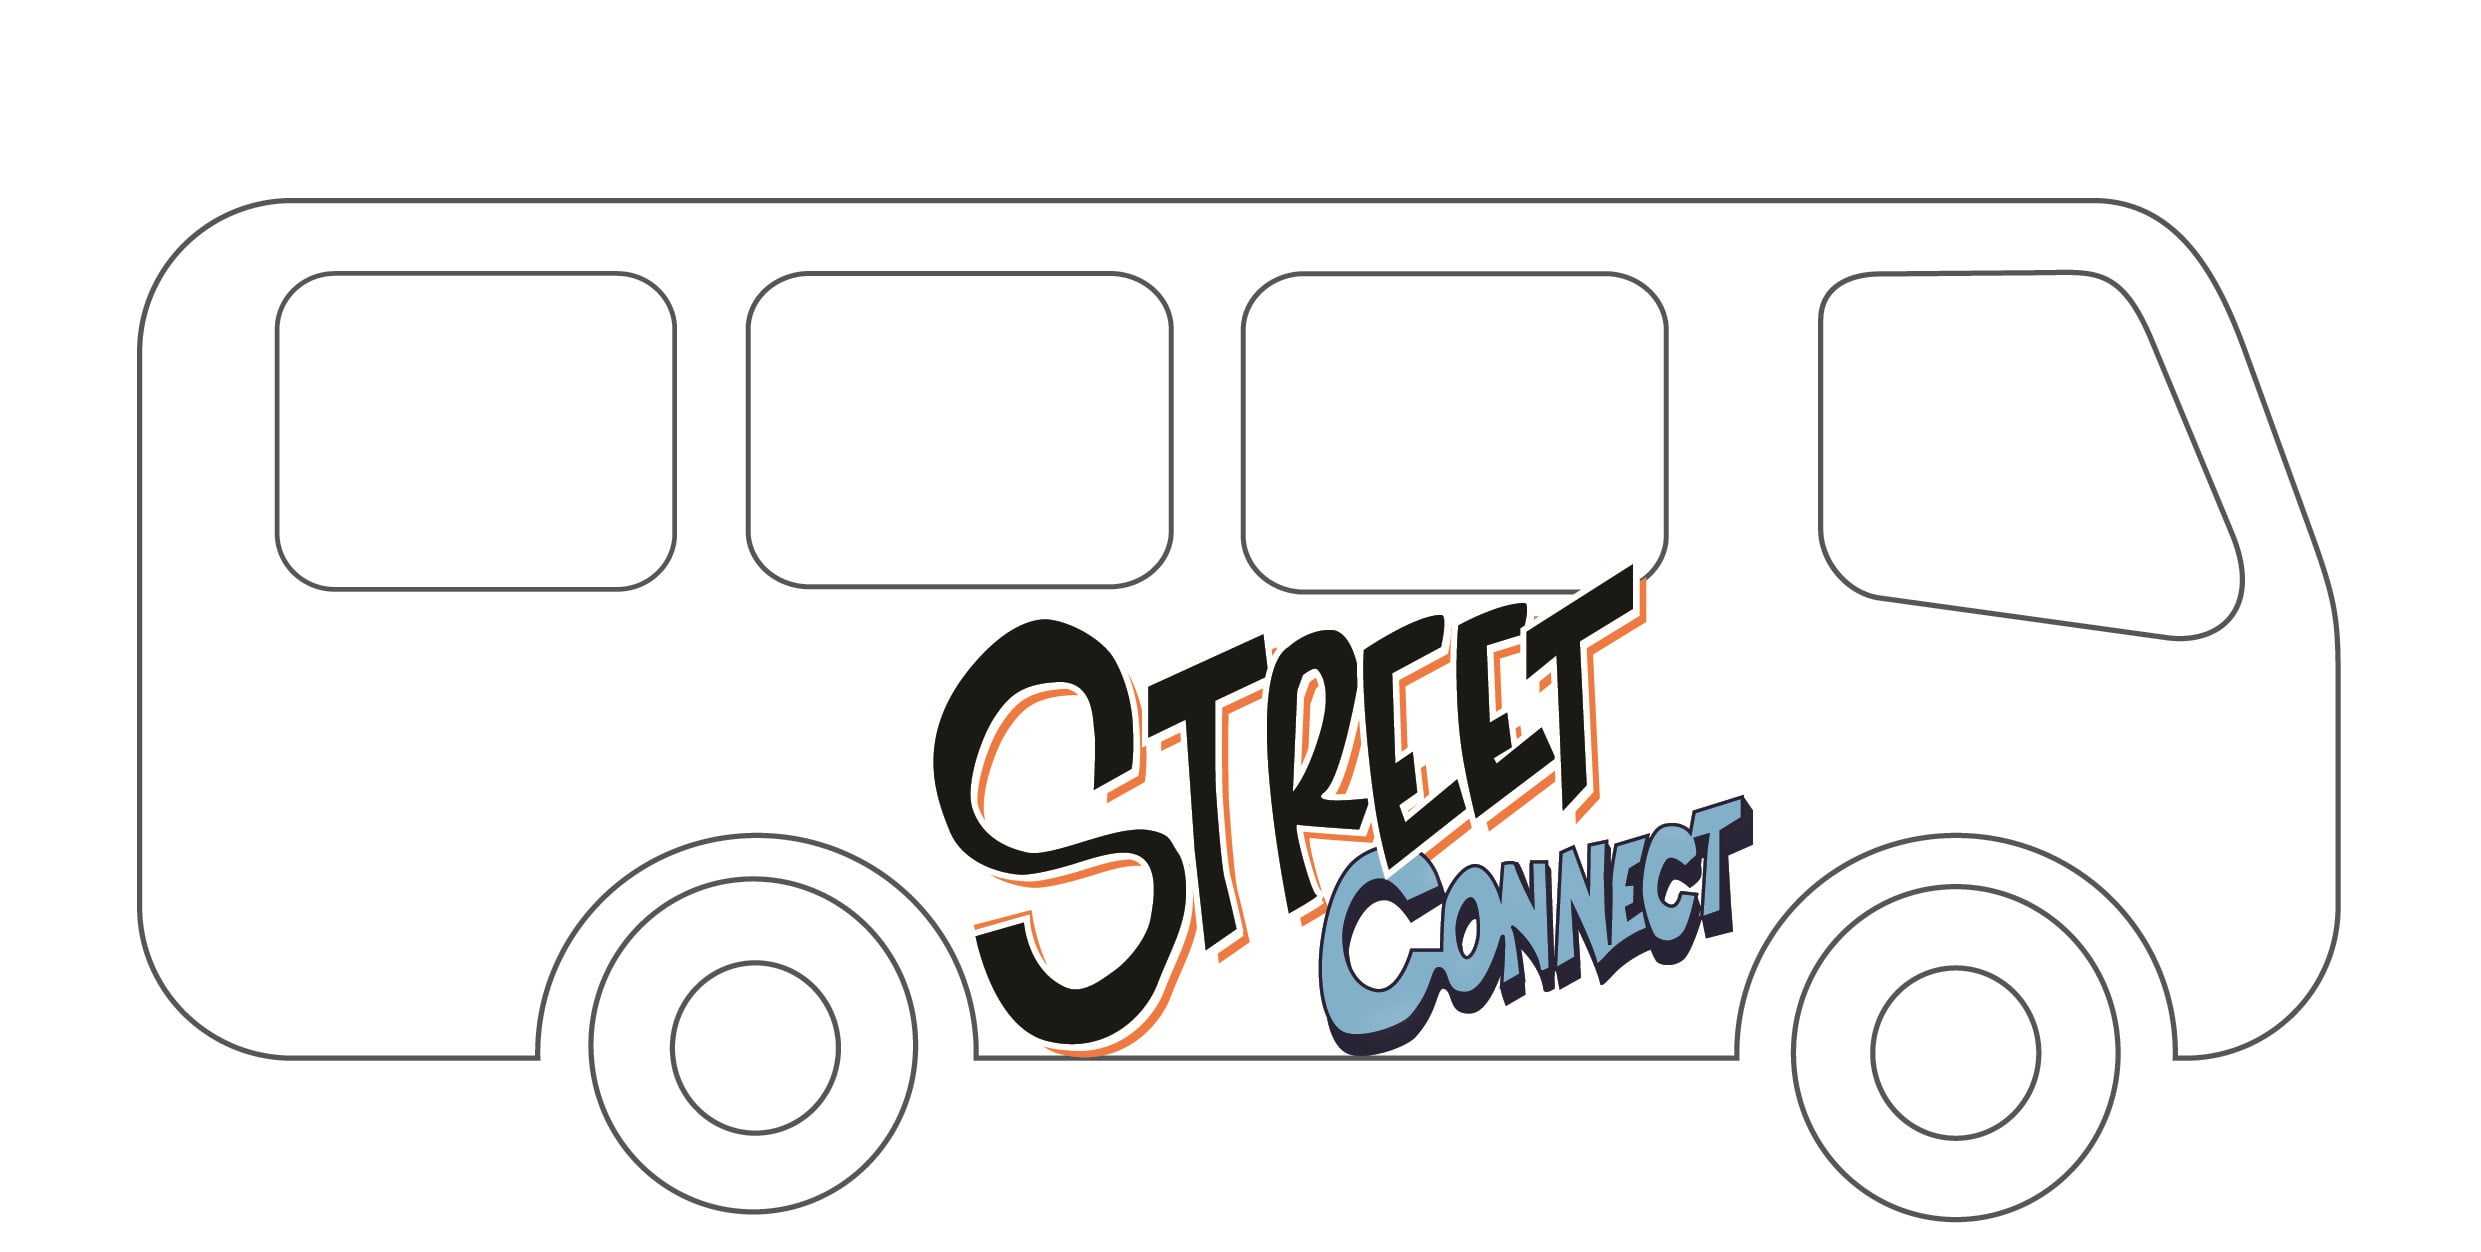 Supported Charities - Street Connect